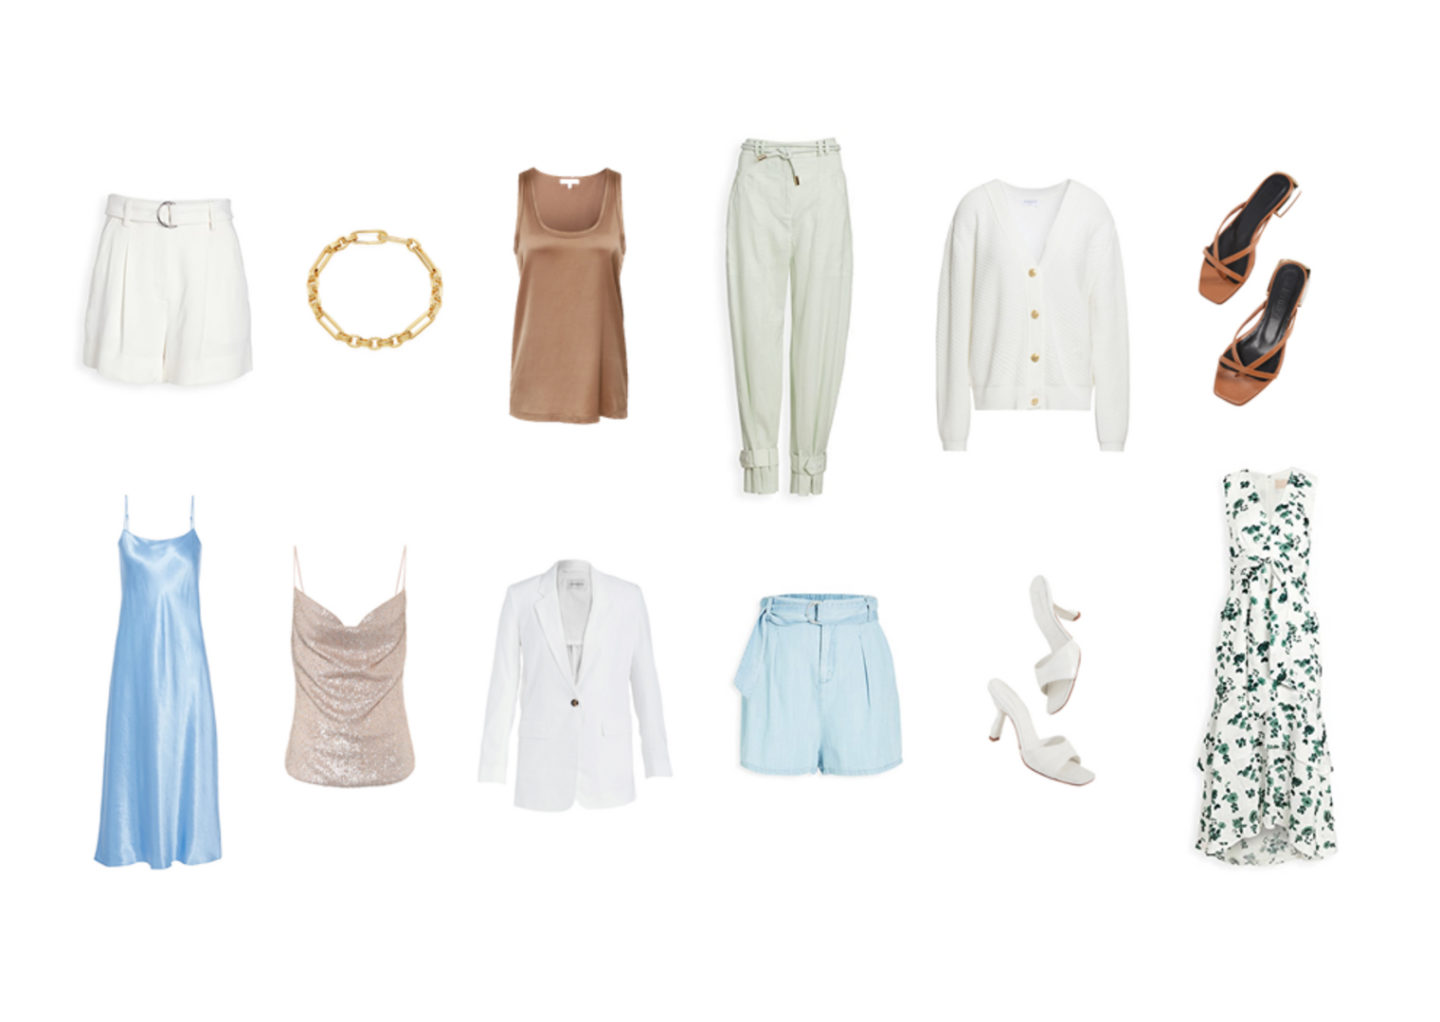 Chic summer capsule wardrobe for the city plus 12 outfits for inspiration